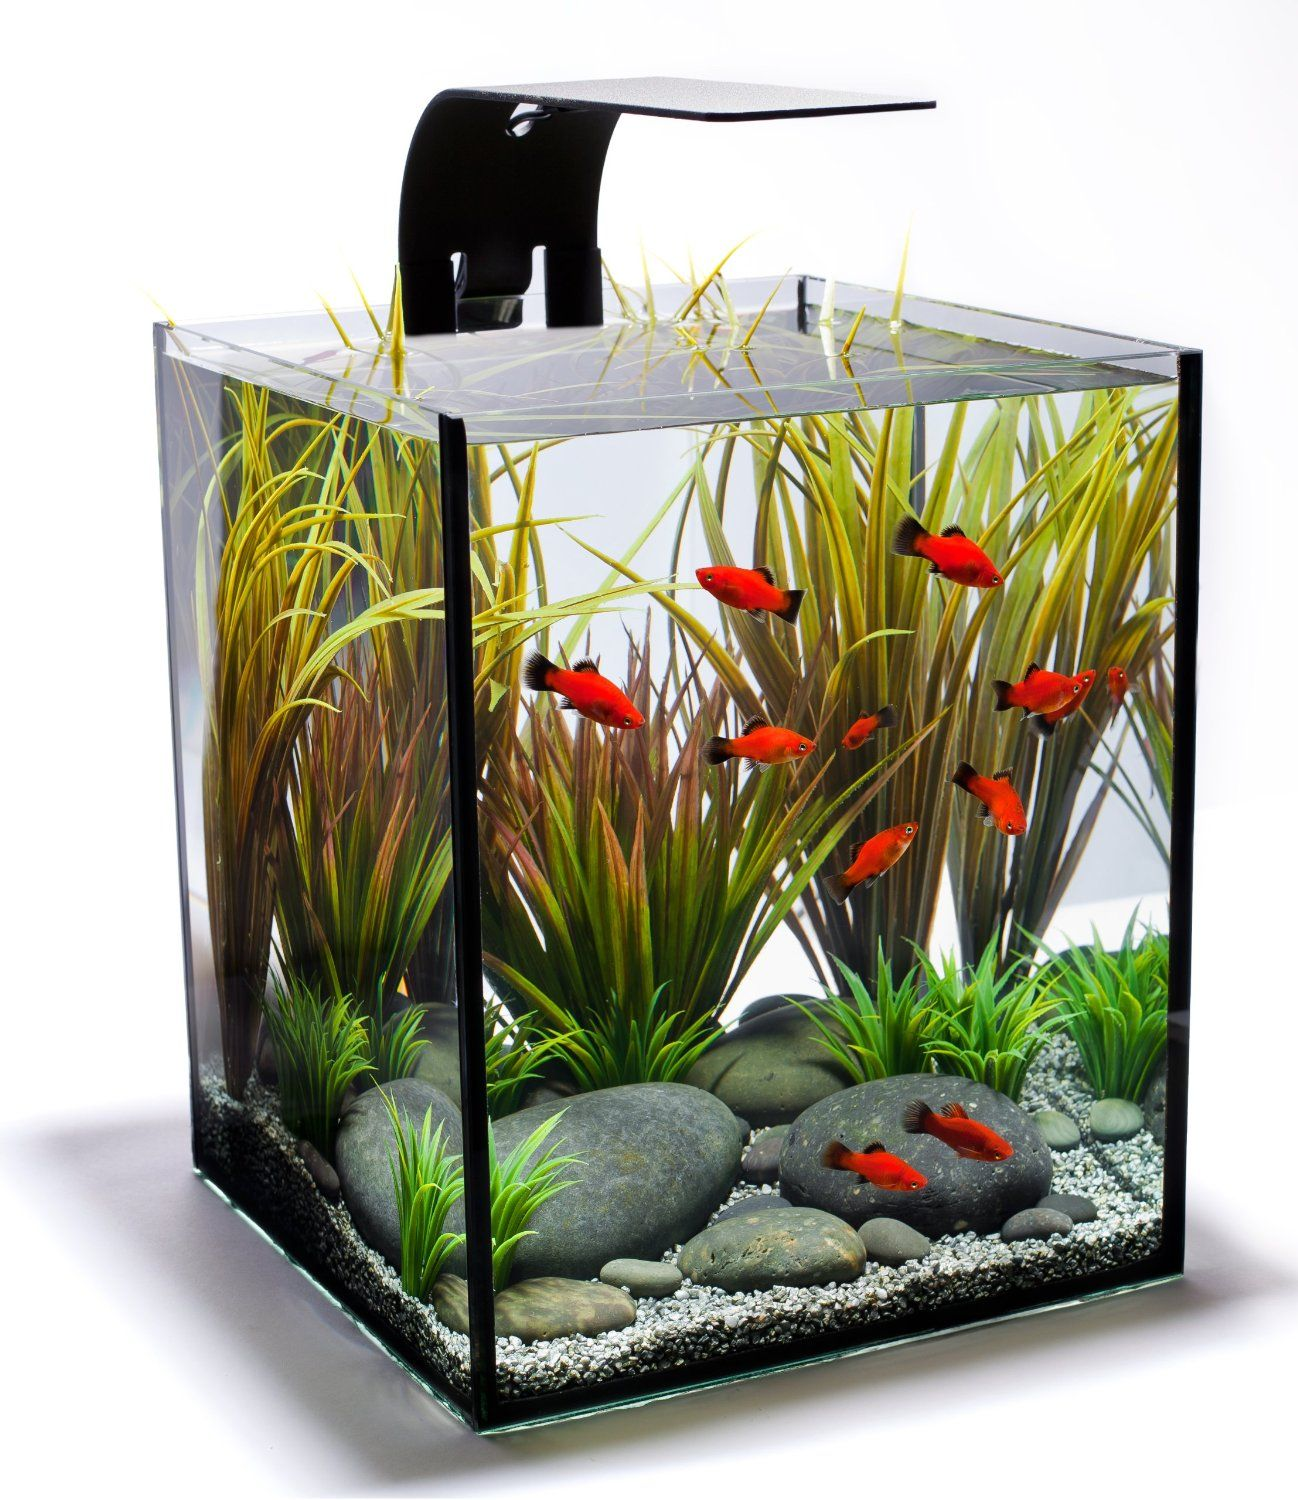 Small aquarium fish tanks -